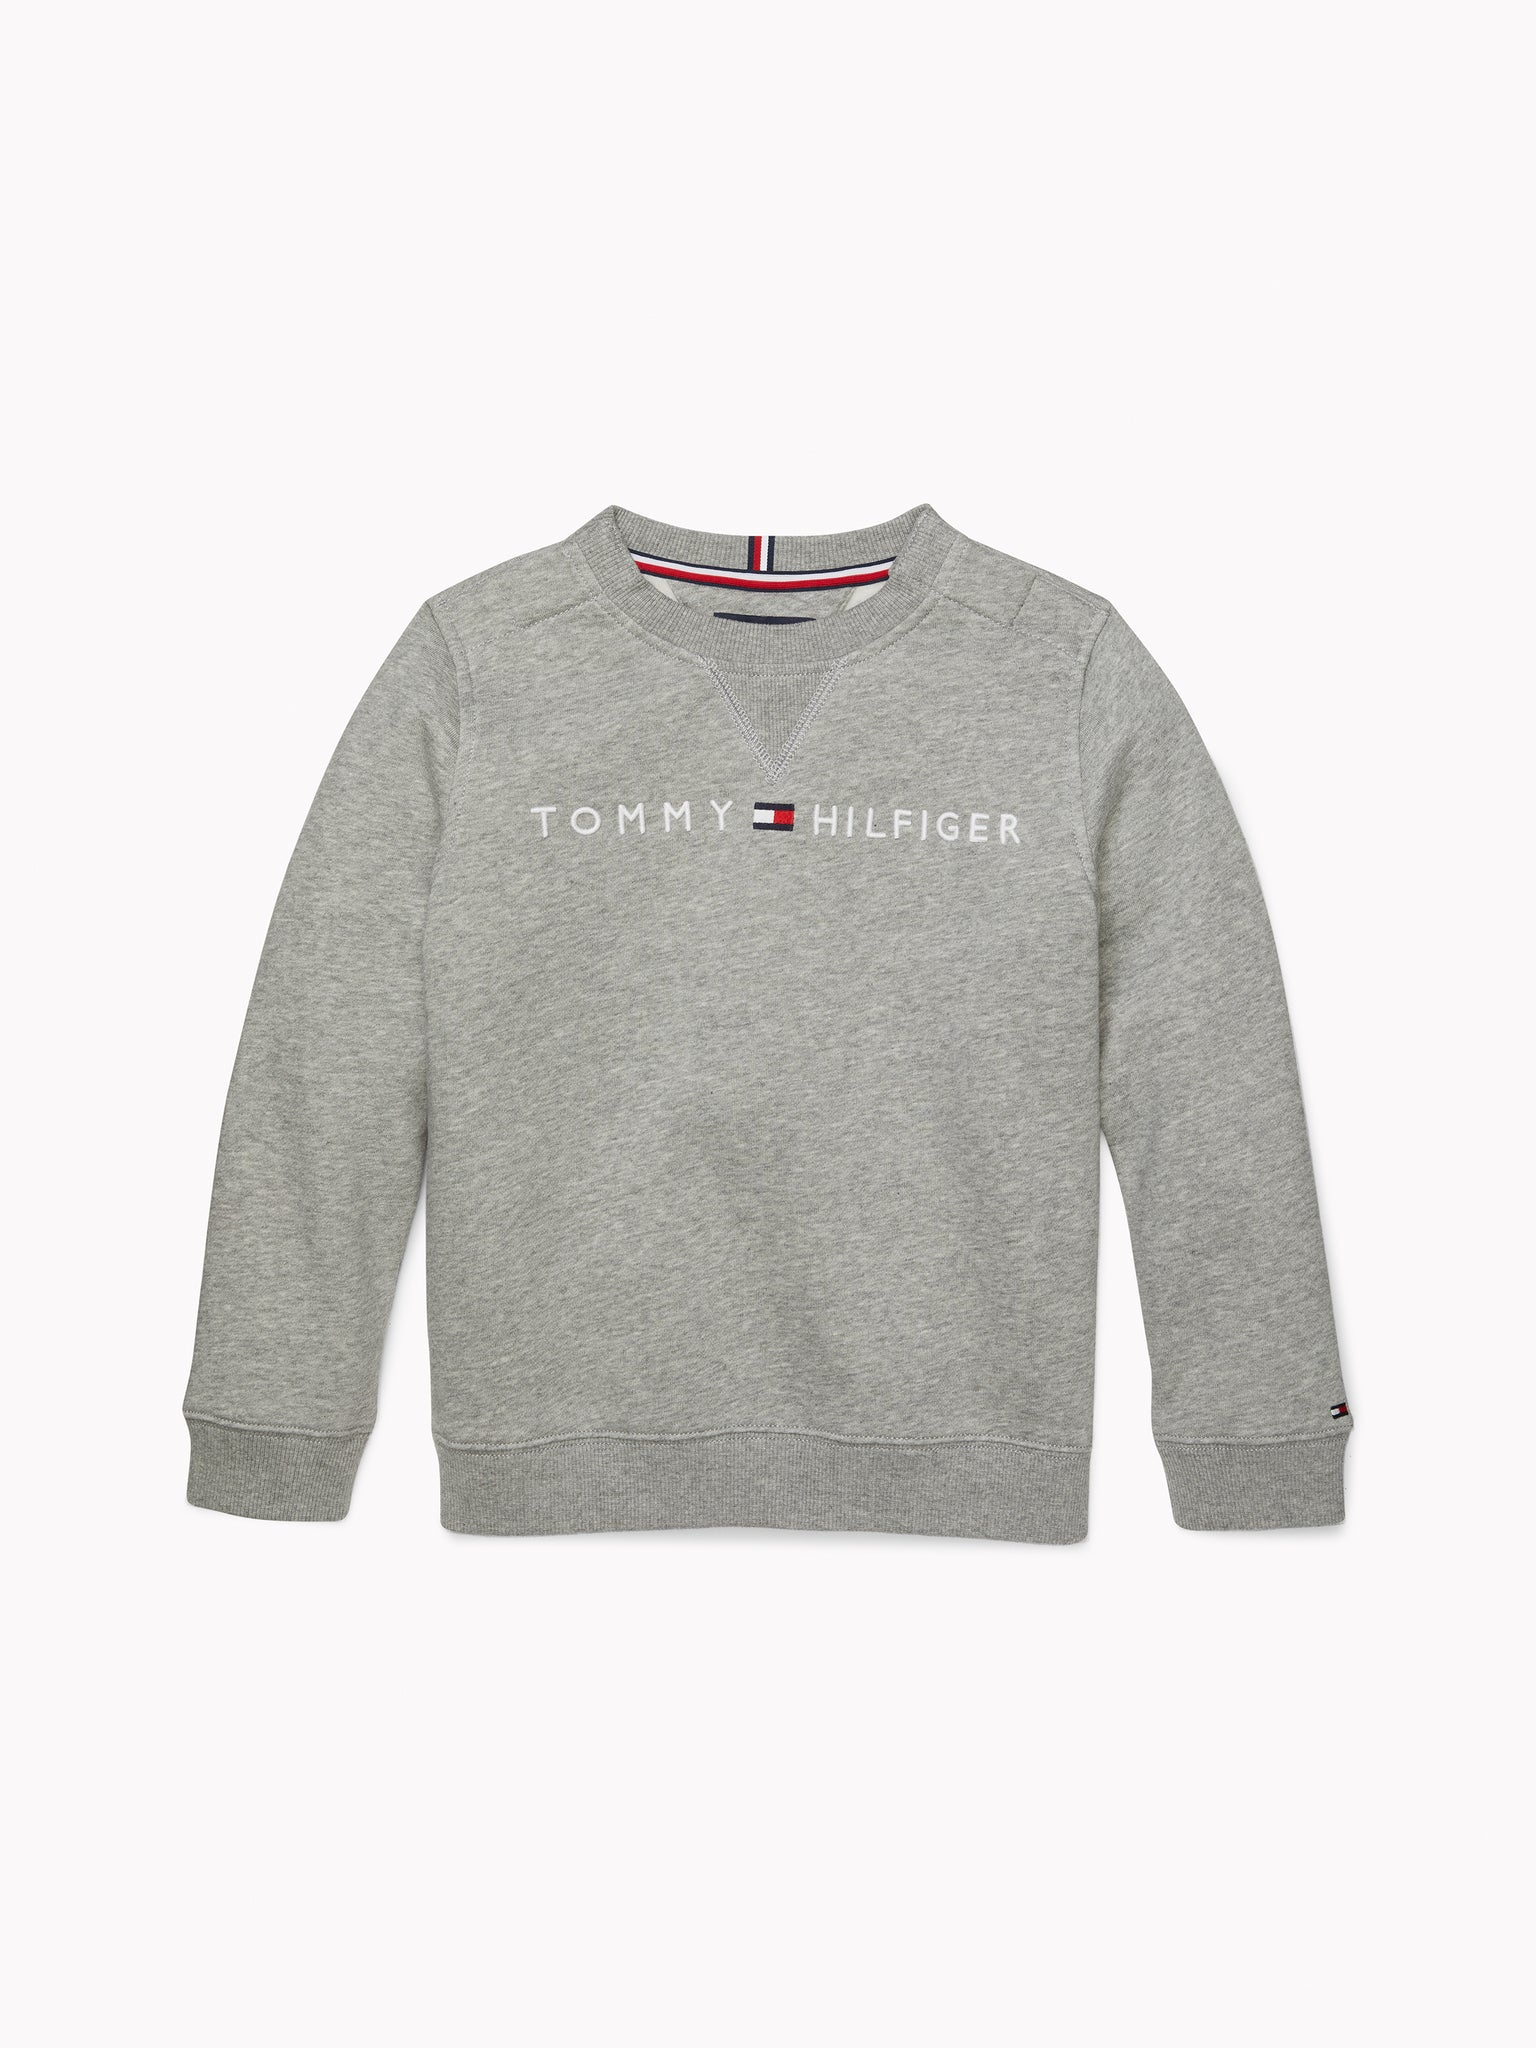 Tommy Hilfiger Sweatshirt (Boys) - Grey